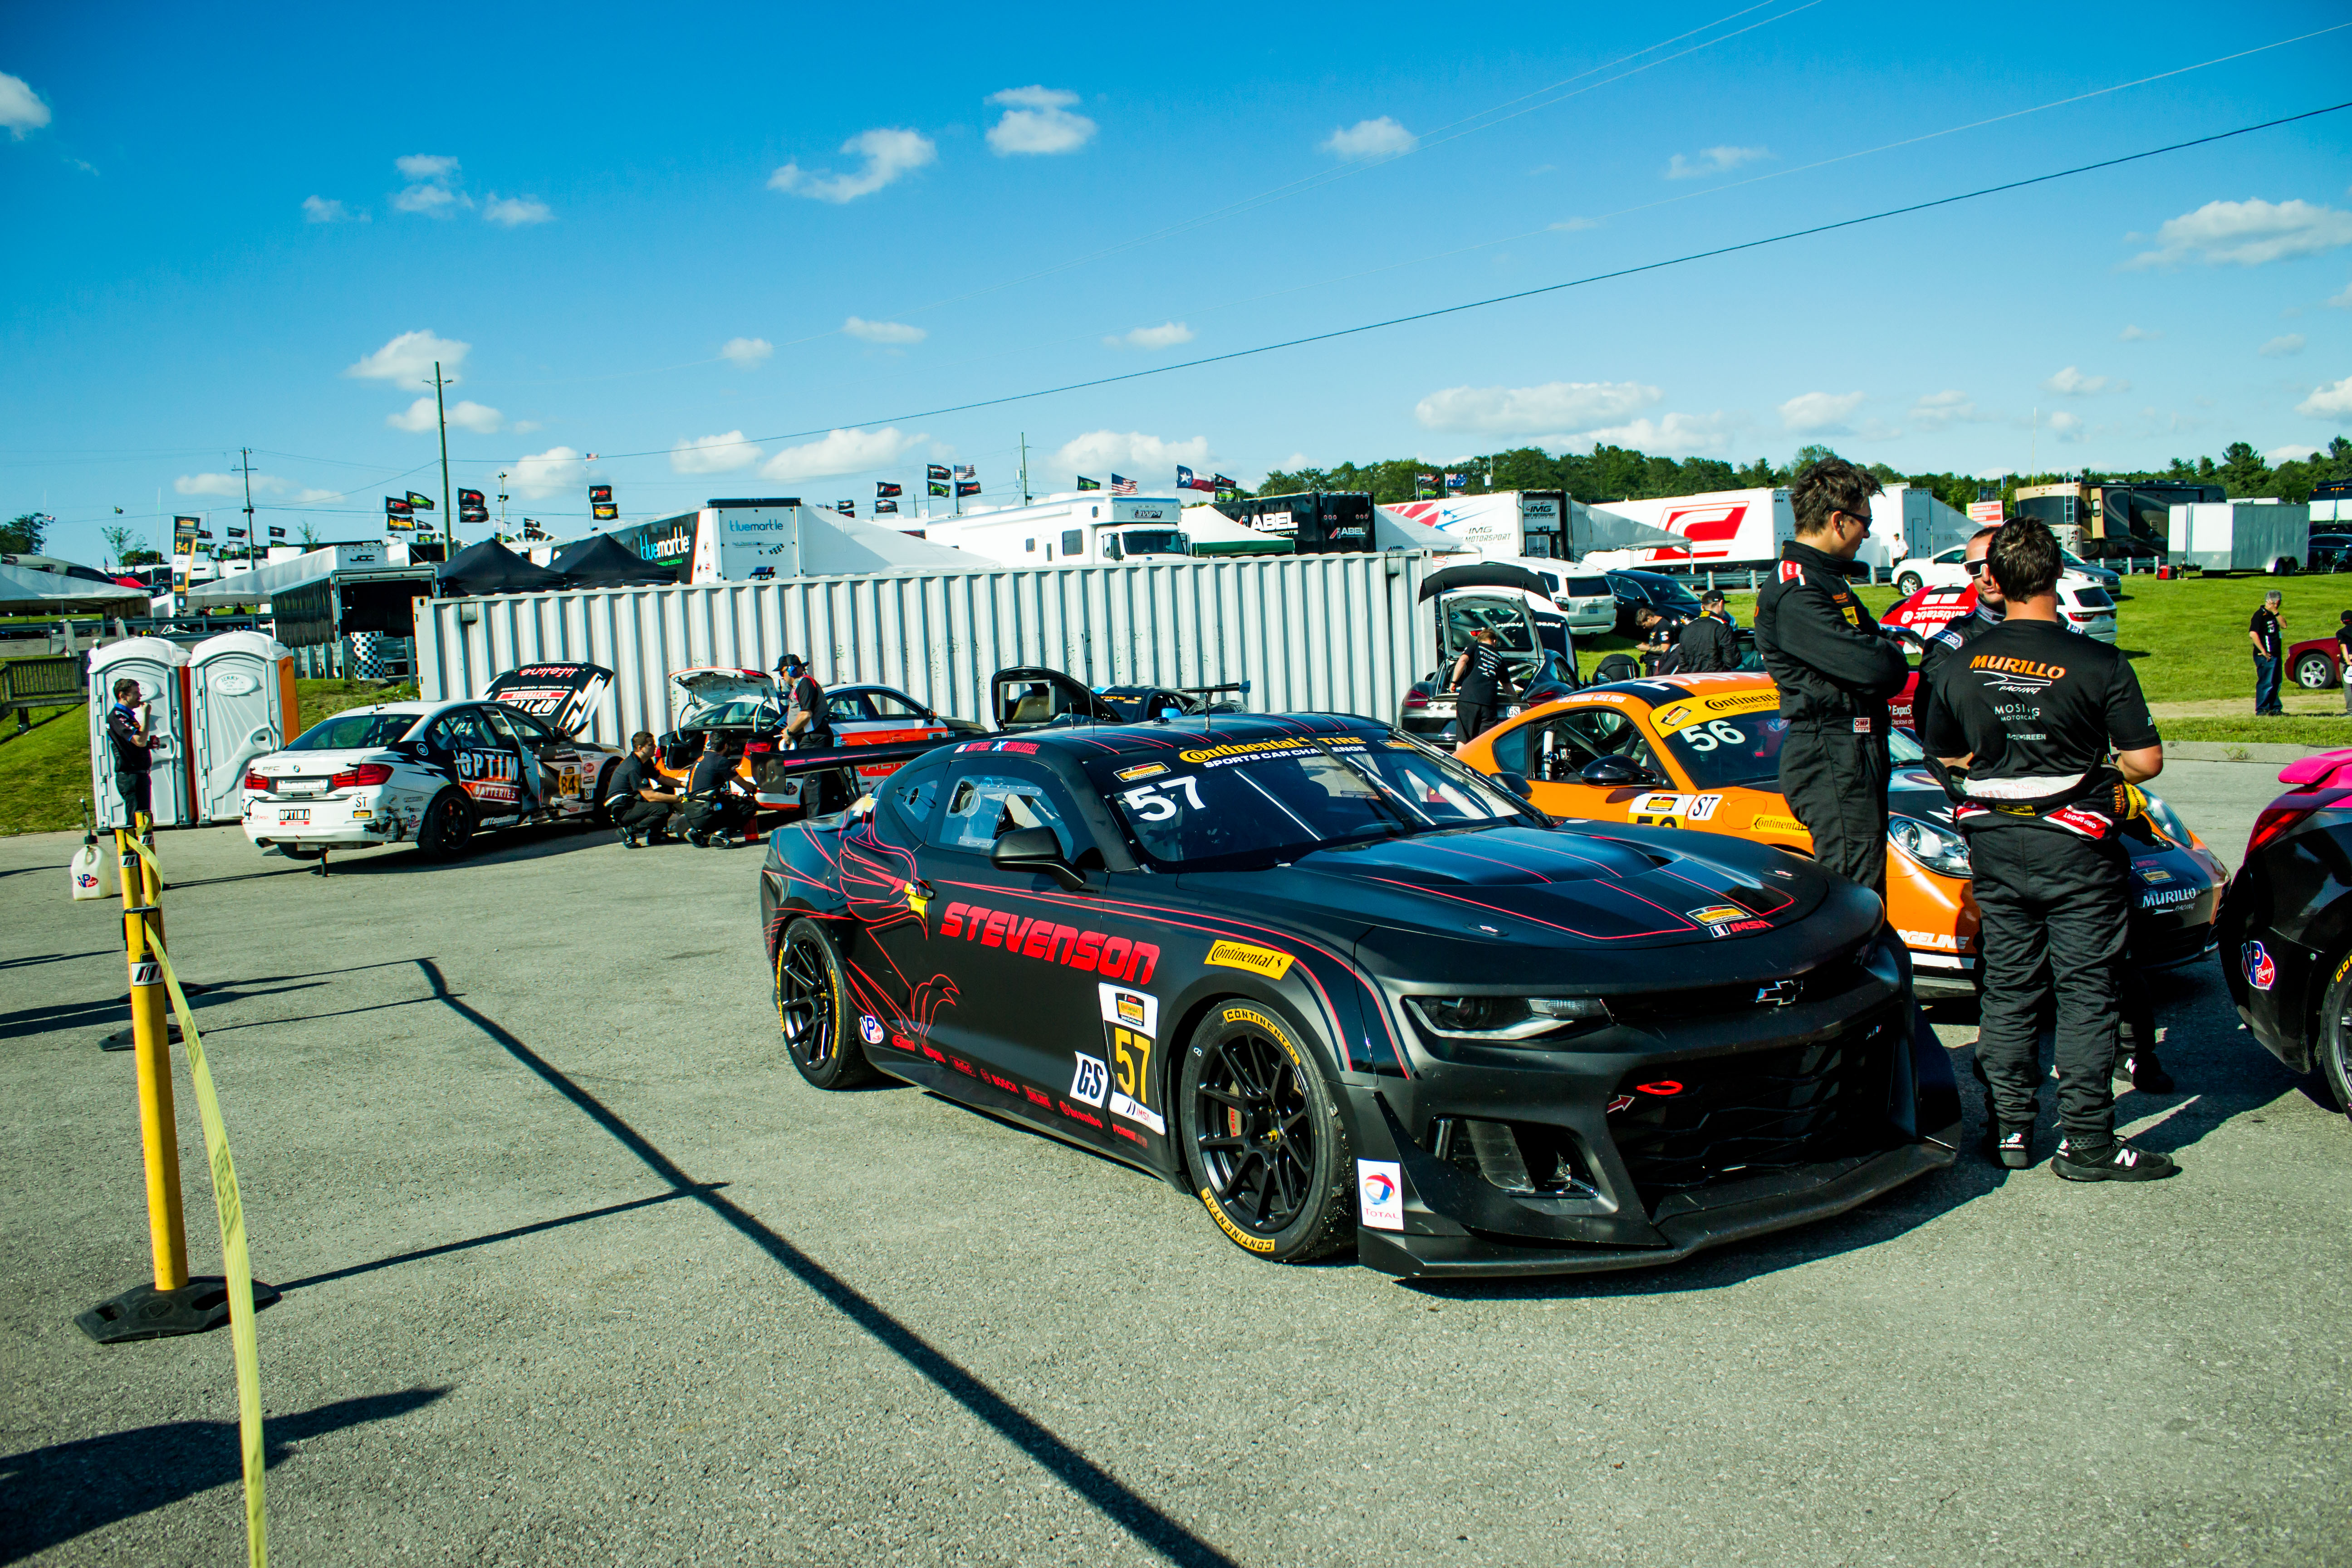 Camaro Gt4 Gets First Win In Canada Gm Inside News